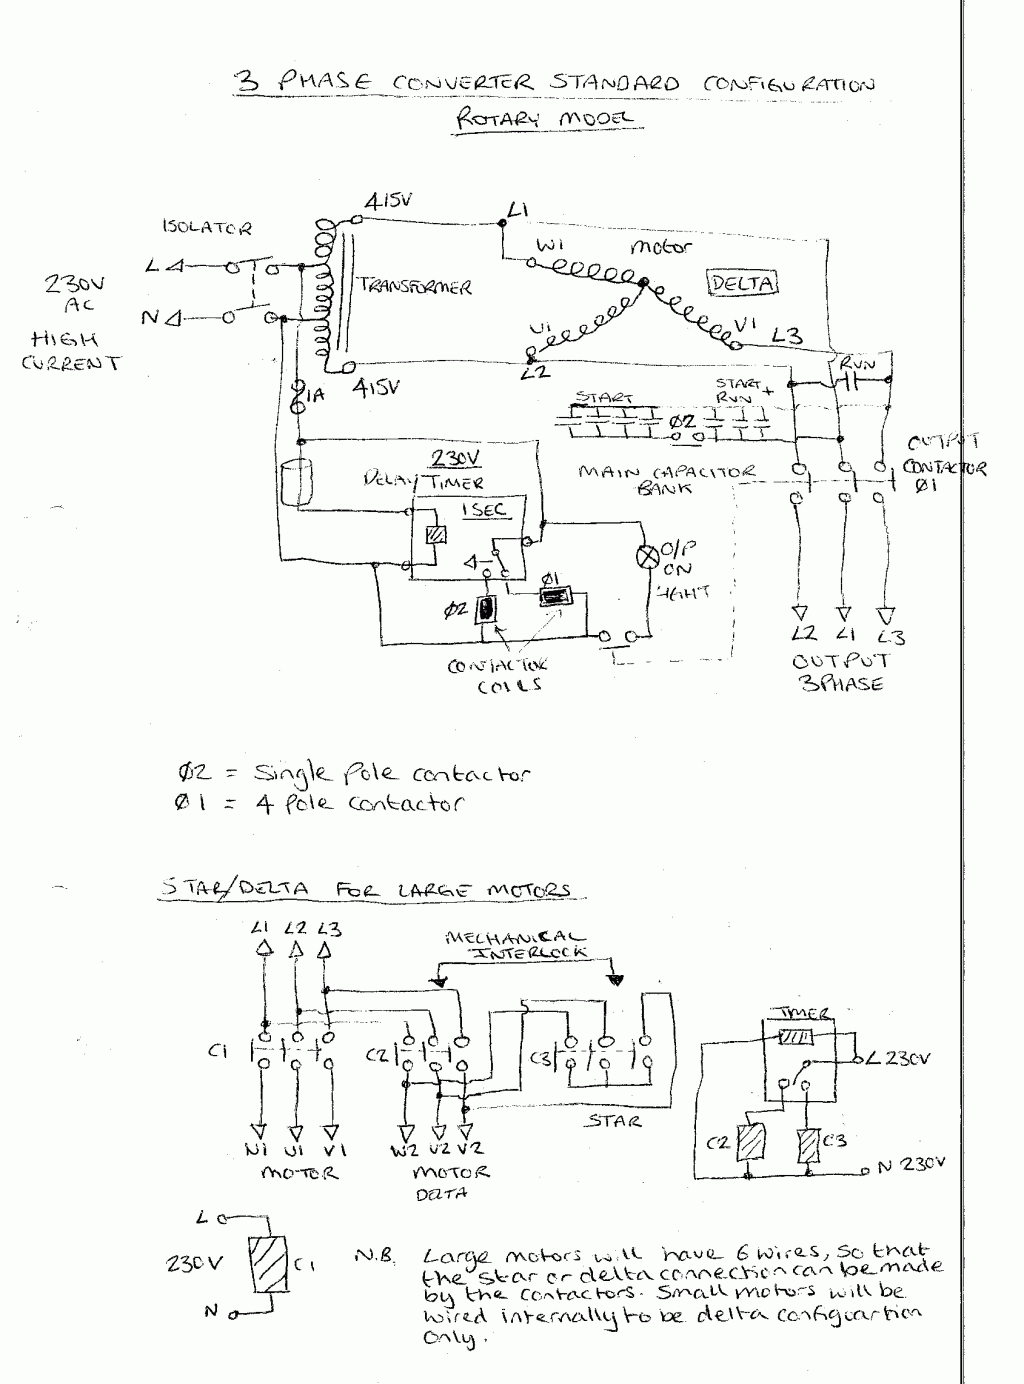 hight resolution of three phase static converter wiring diagram wiring diagrams baldor reliance motor wiring diagram 3 phase rotary converter wiring diagram free picture